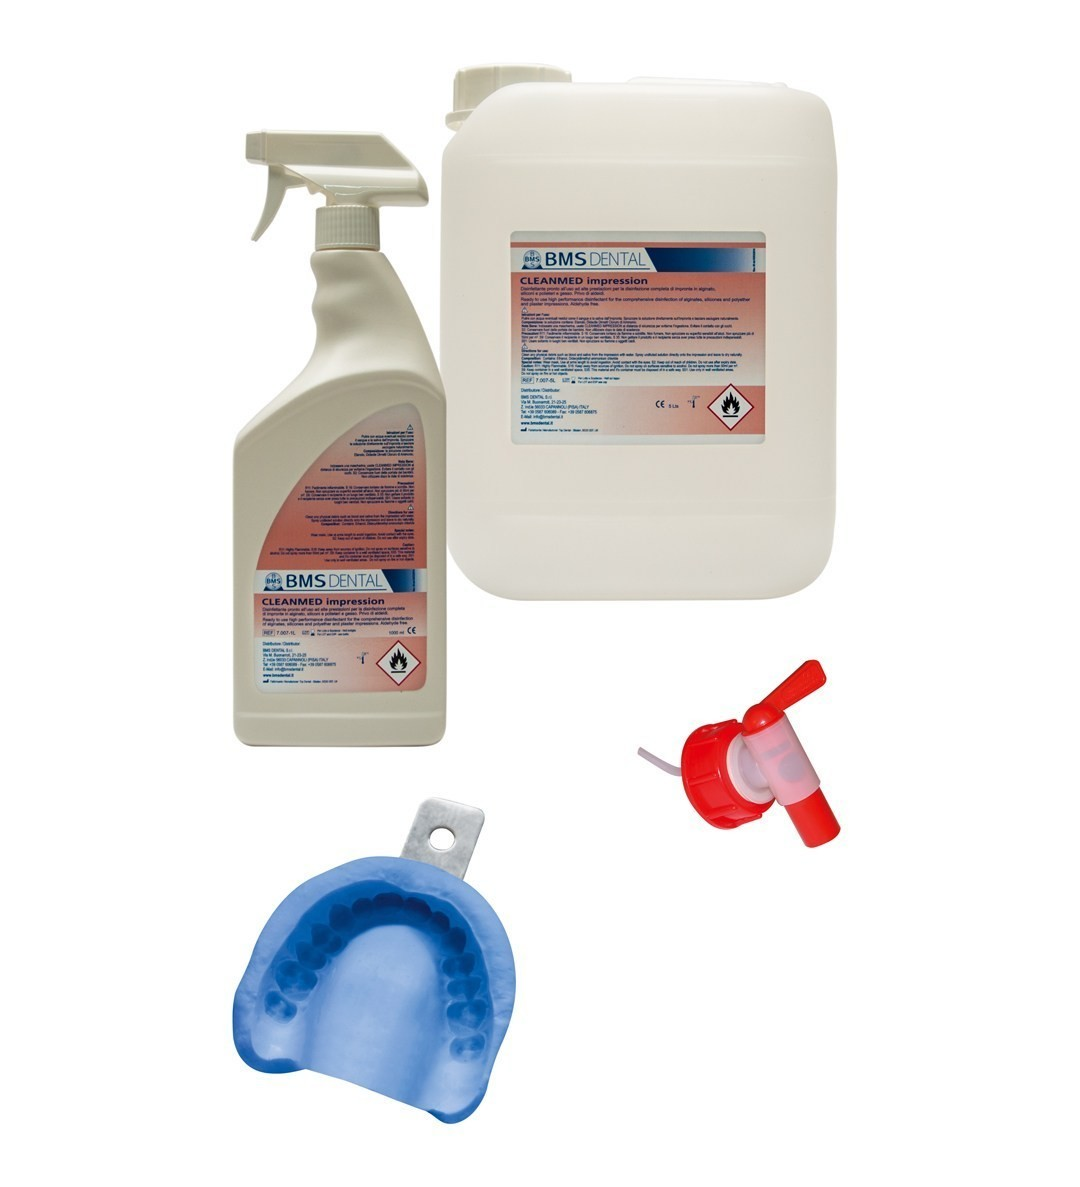 Cleanmed Impression 1L